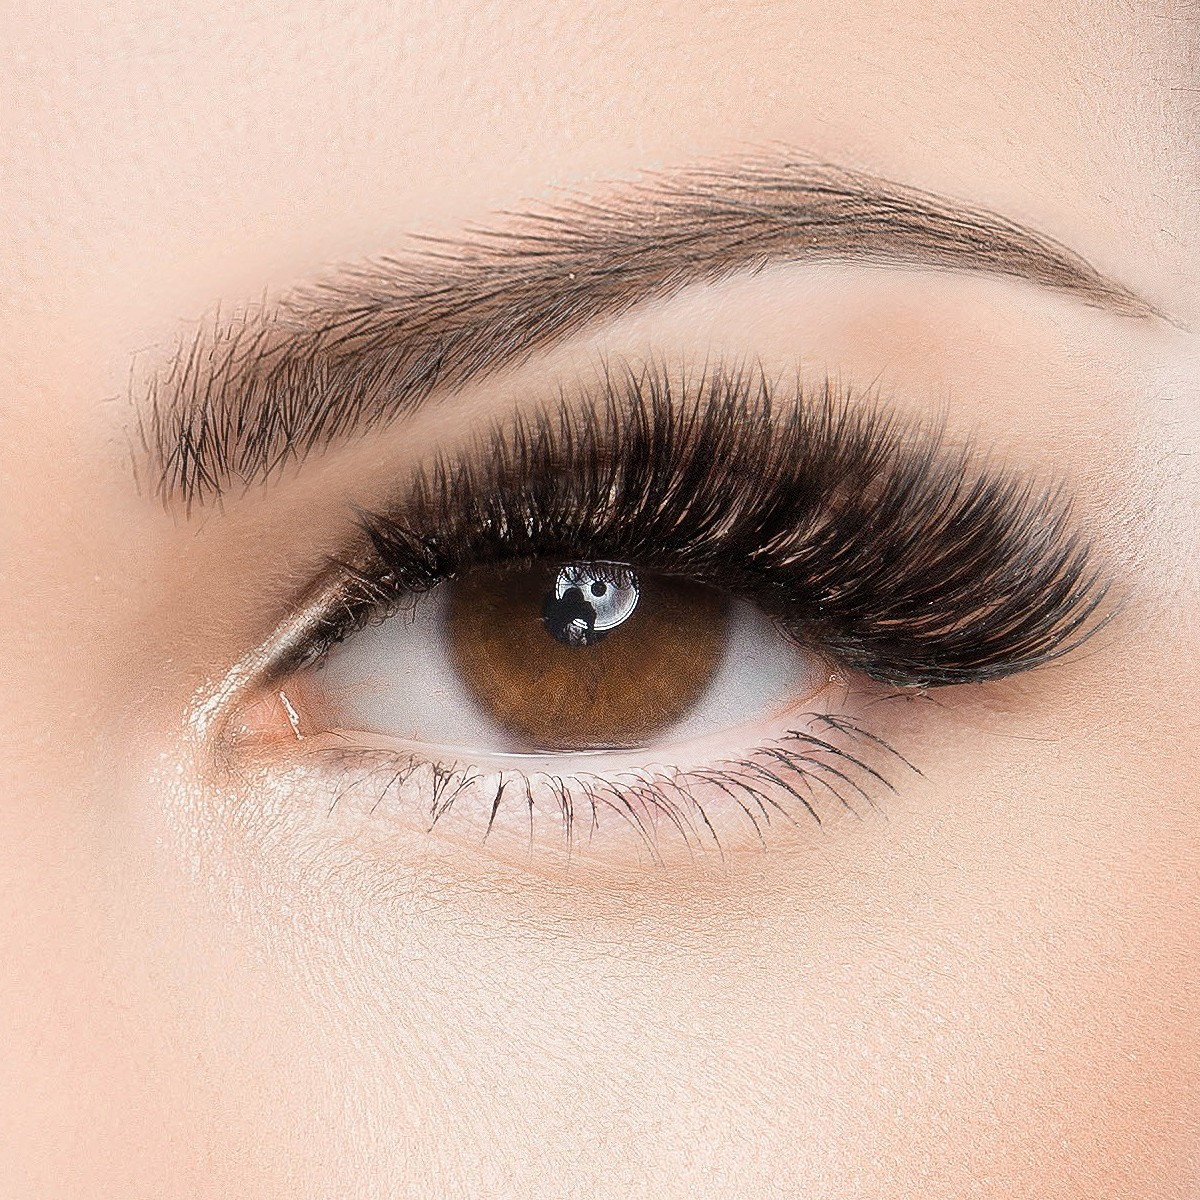 Welche wimpern extensions